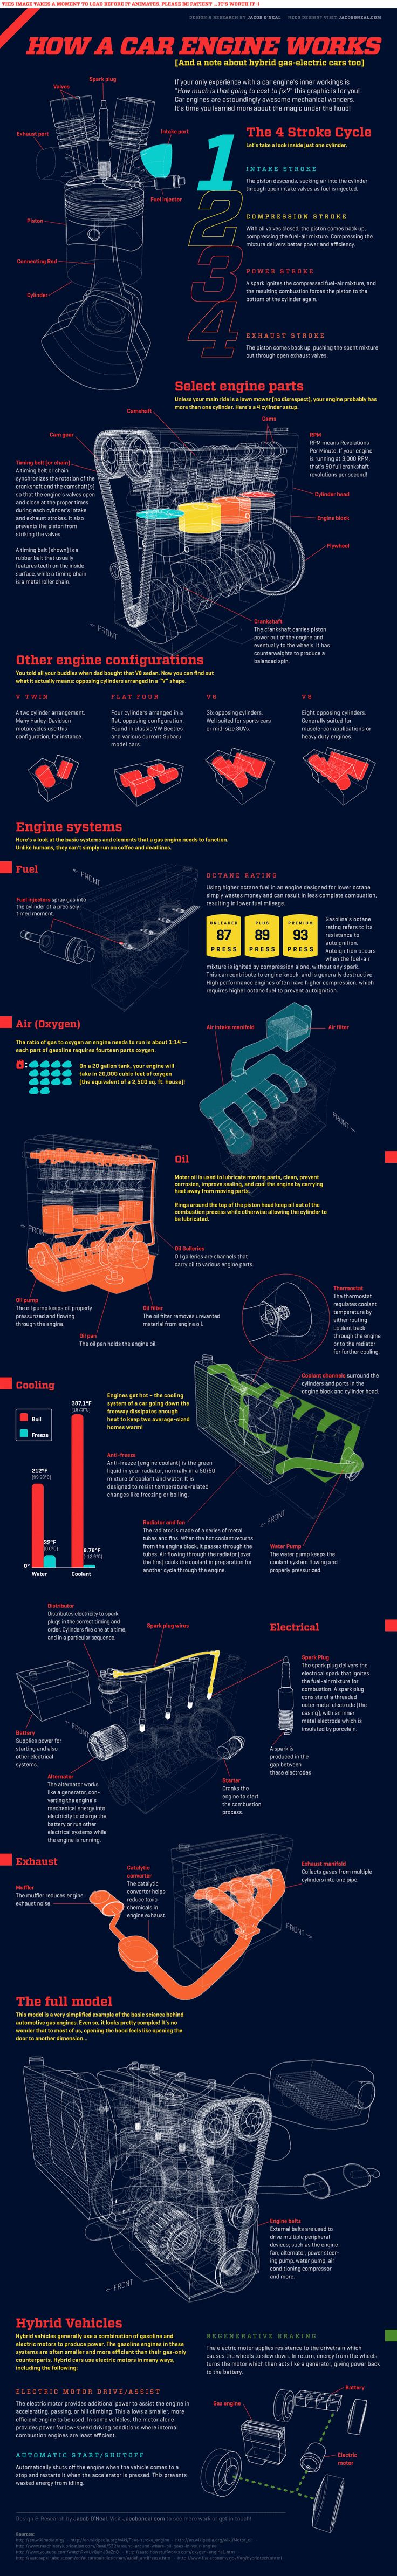 Great animated infographic on how a car engine works.